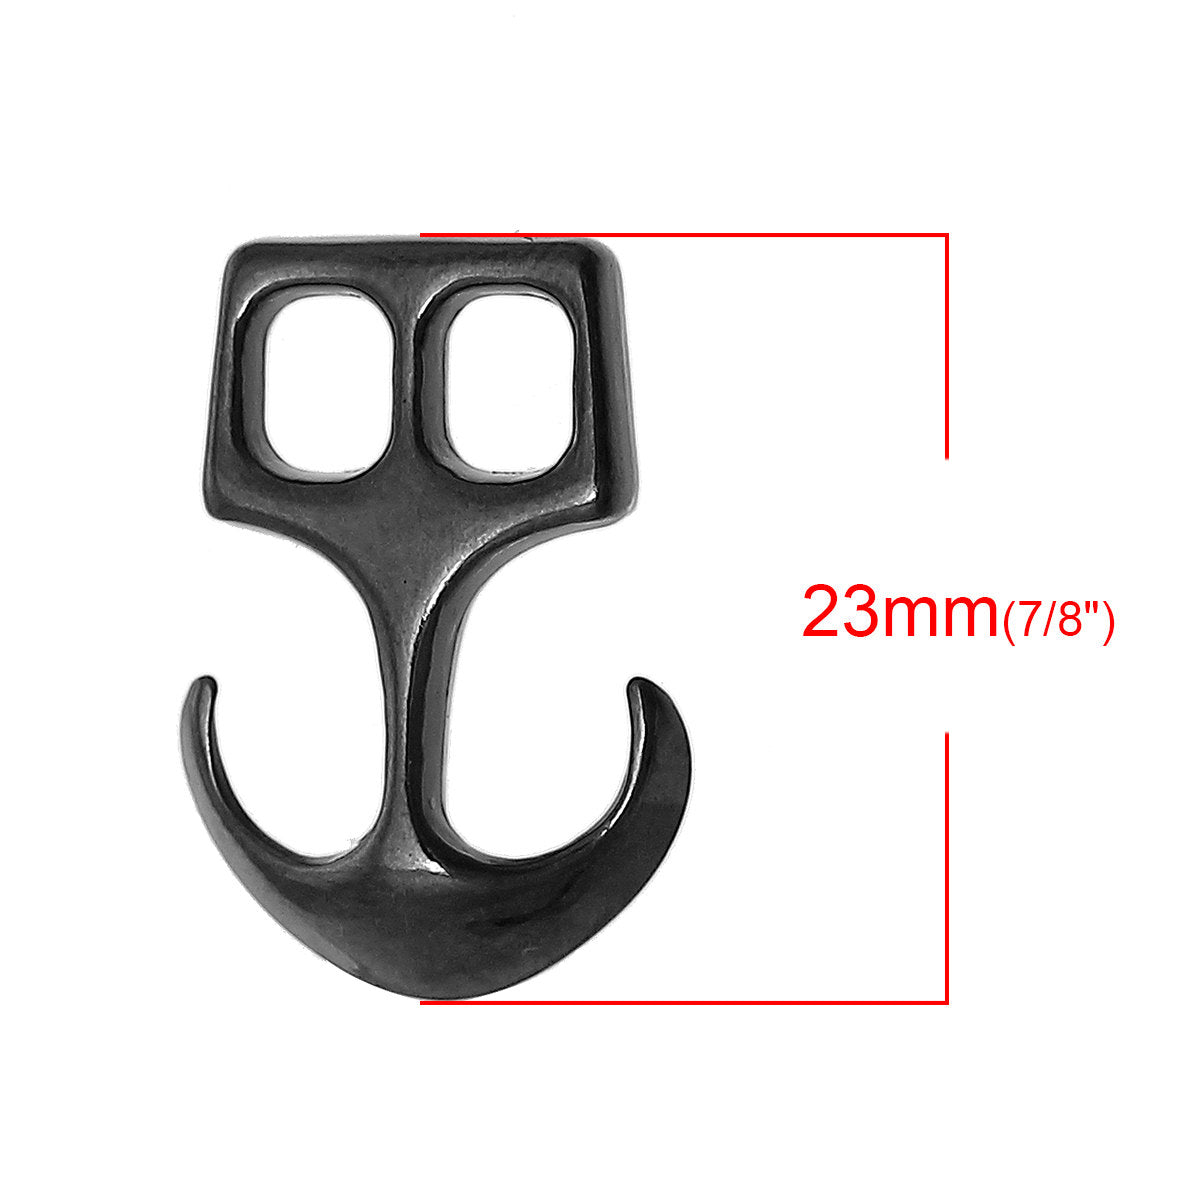 "Gunmetal Anchor Clasp Connector - Black - 23mm x 16mm (7/8"" x  5/8"") - Black Anchor Clasp for Leather - Clasps for Leather Finding (74890)"